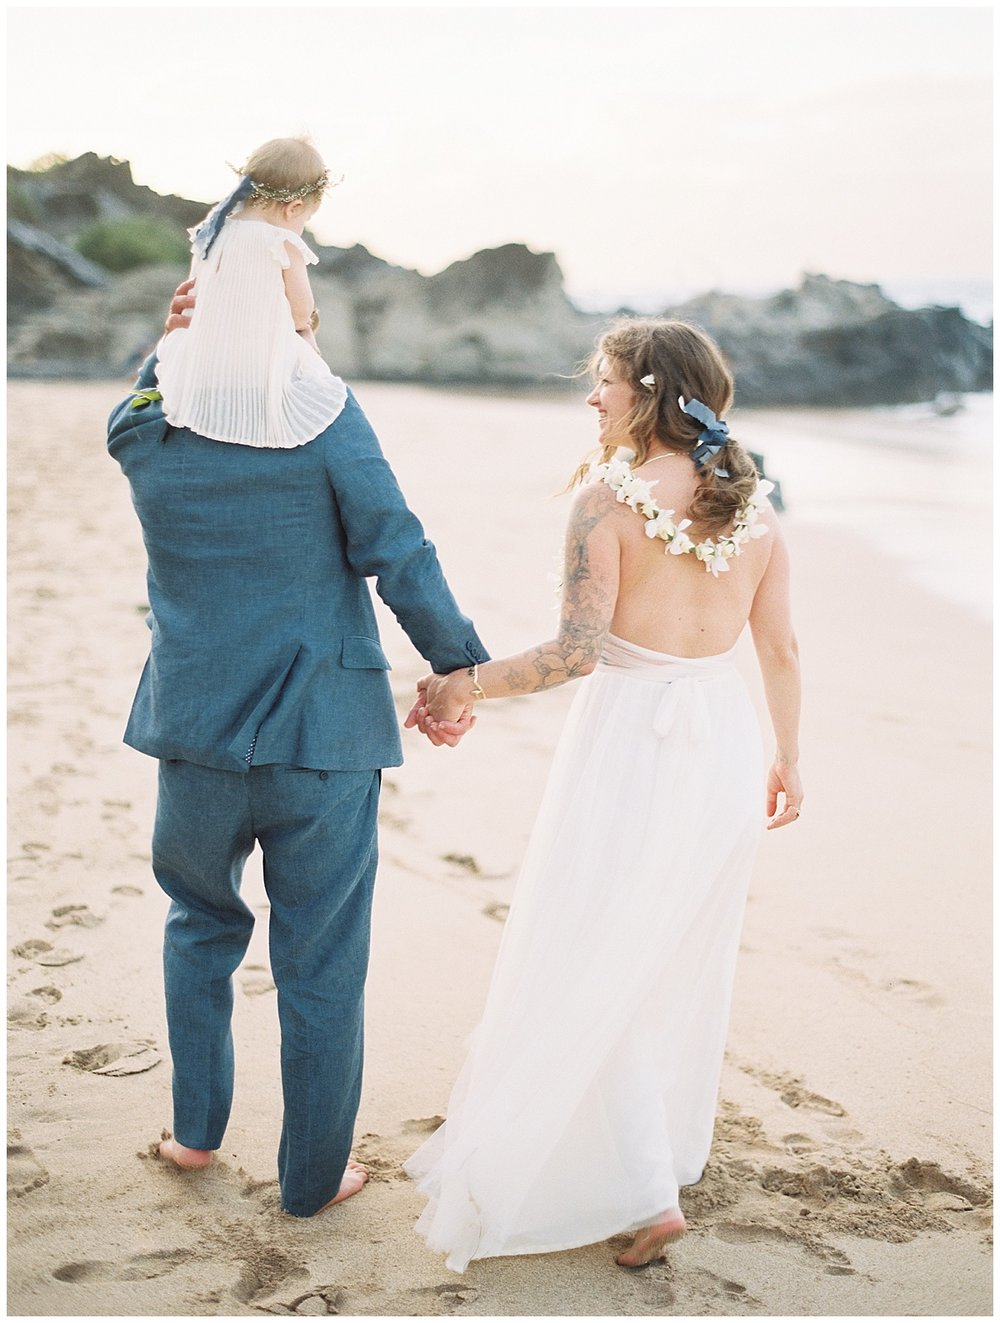 beach-elopement-maui-bride-groom-walking-baby-on-shoulders.jpg